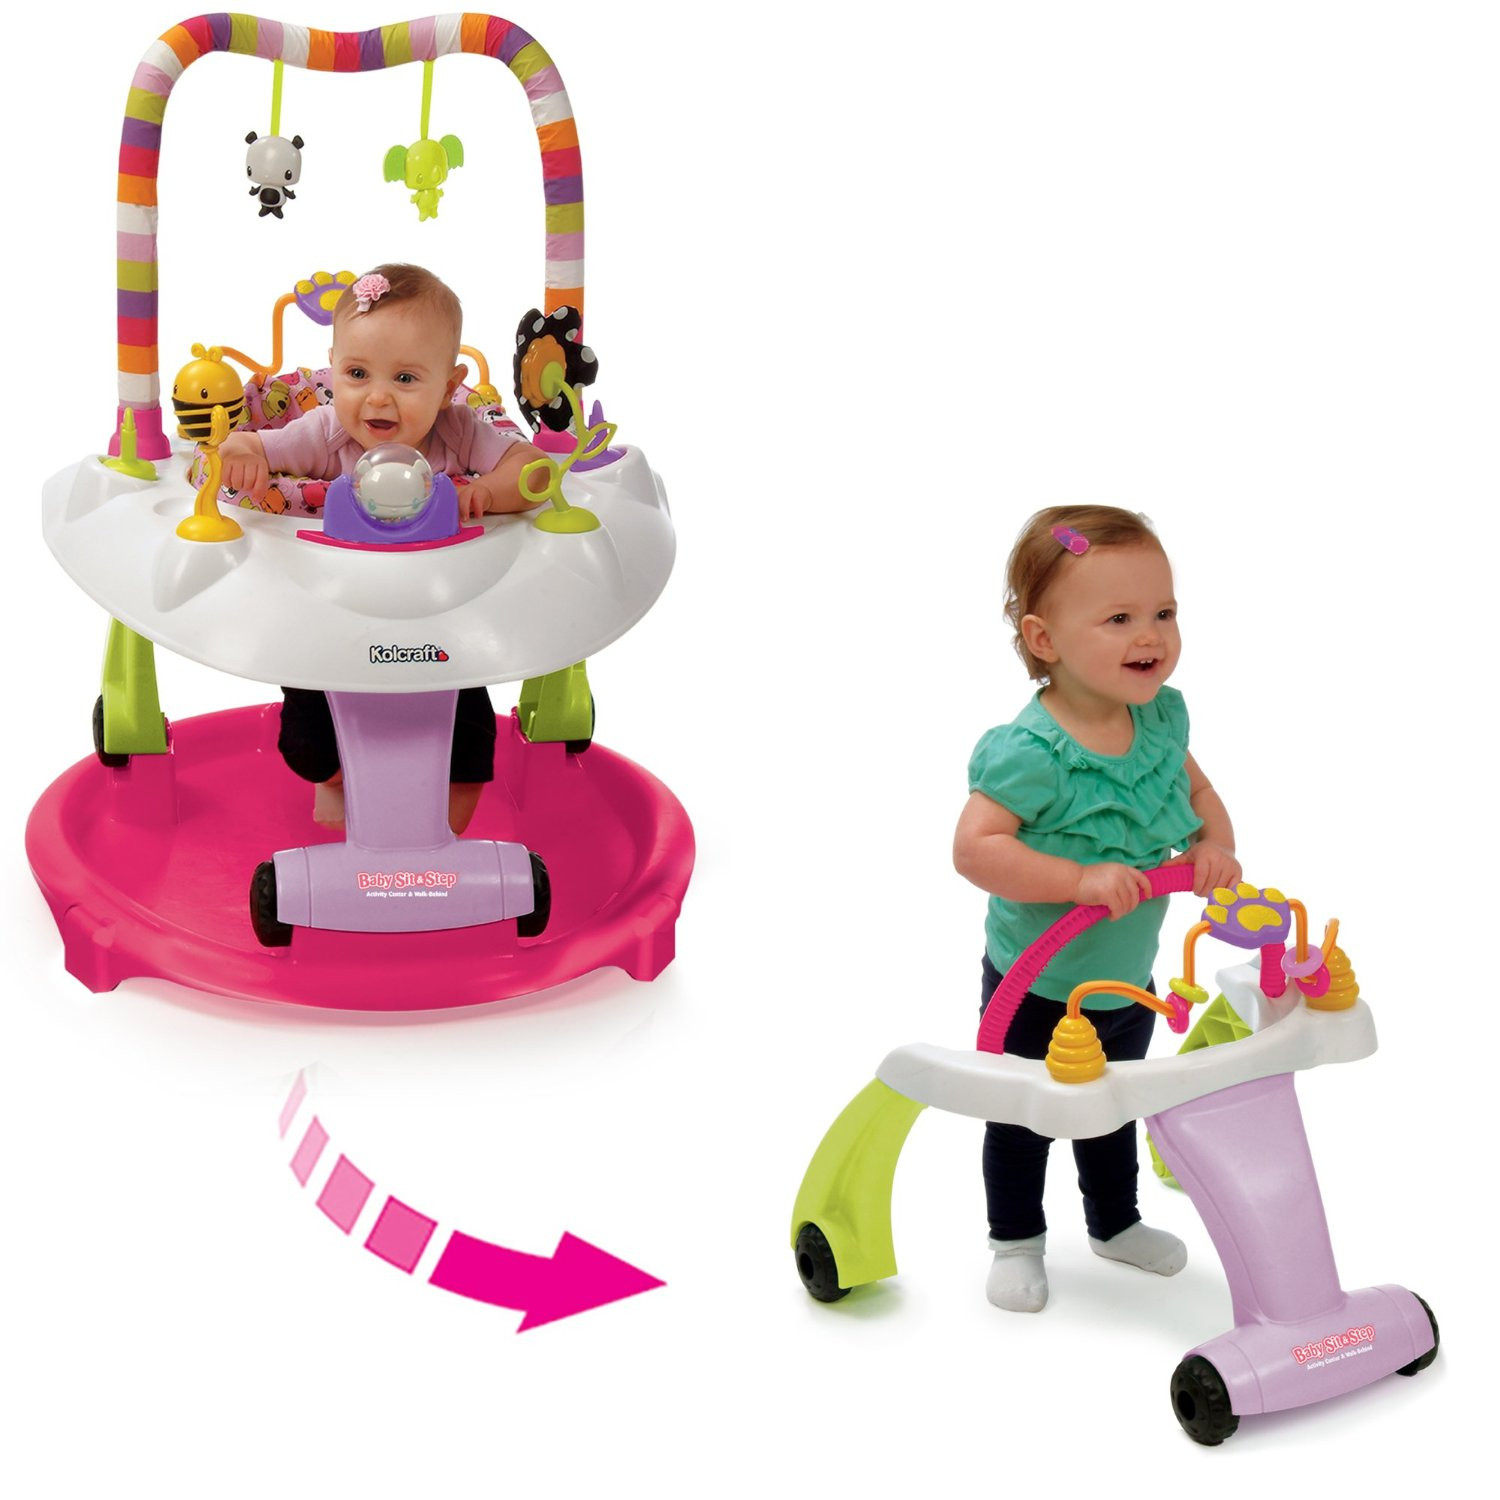 Kolcraft Baby Sit & Step® 2-in-1 Activity Center - Pink Bear